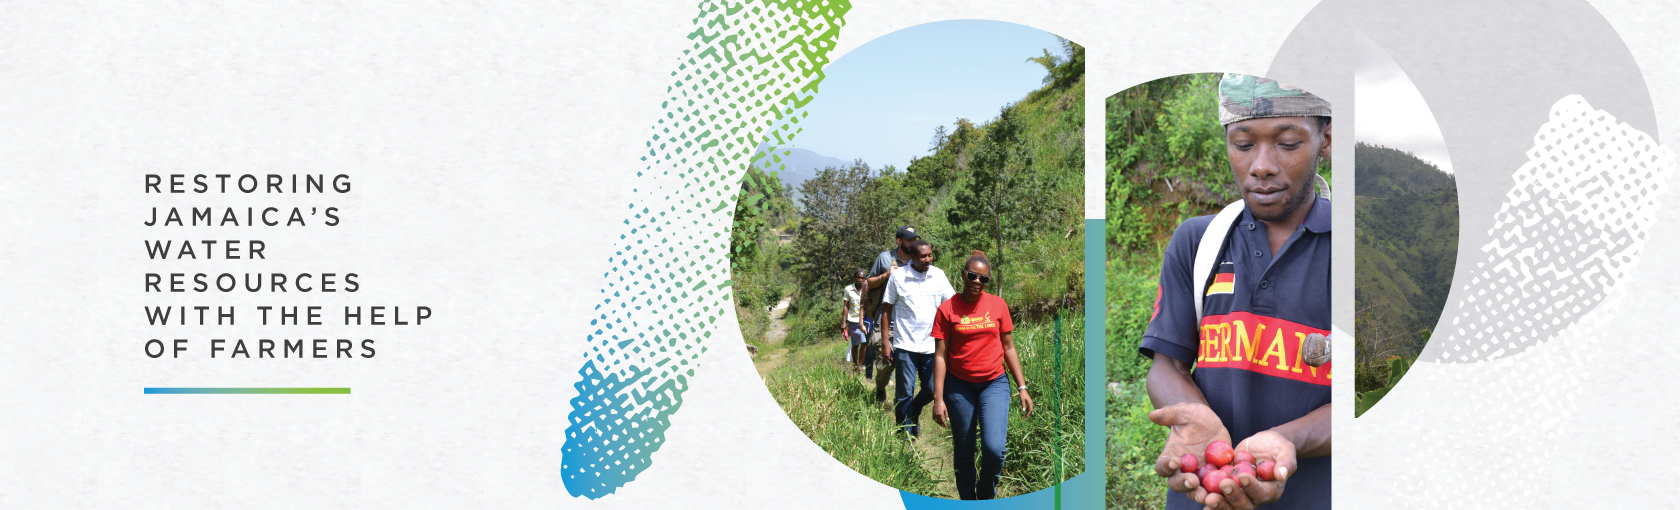 Restoring Jamaica's Water Resources With the Help of Farmers